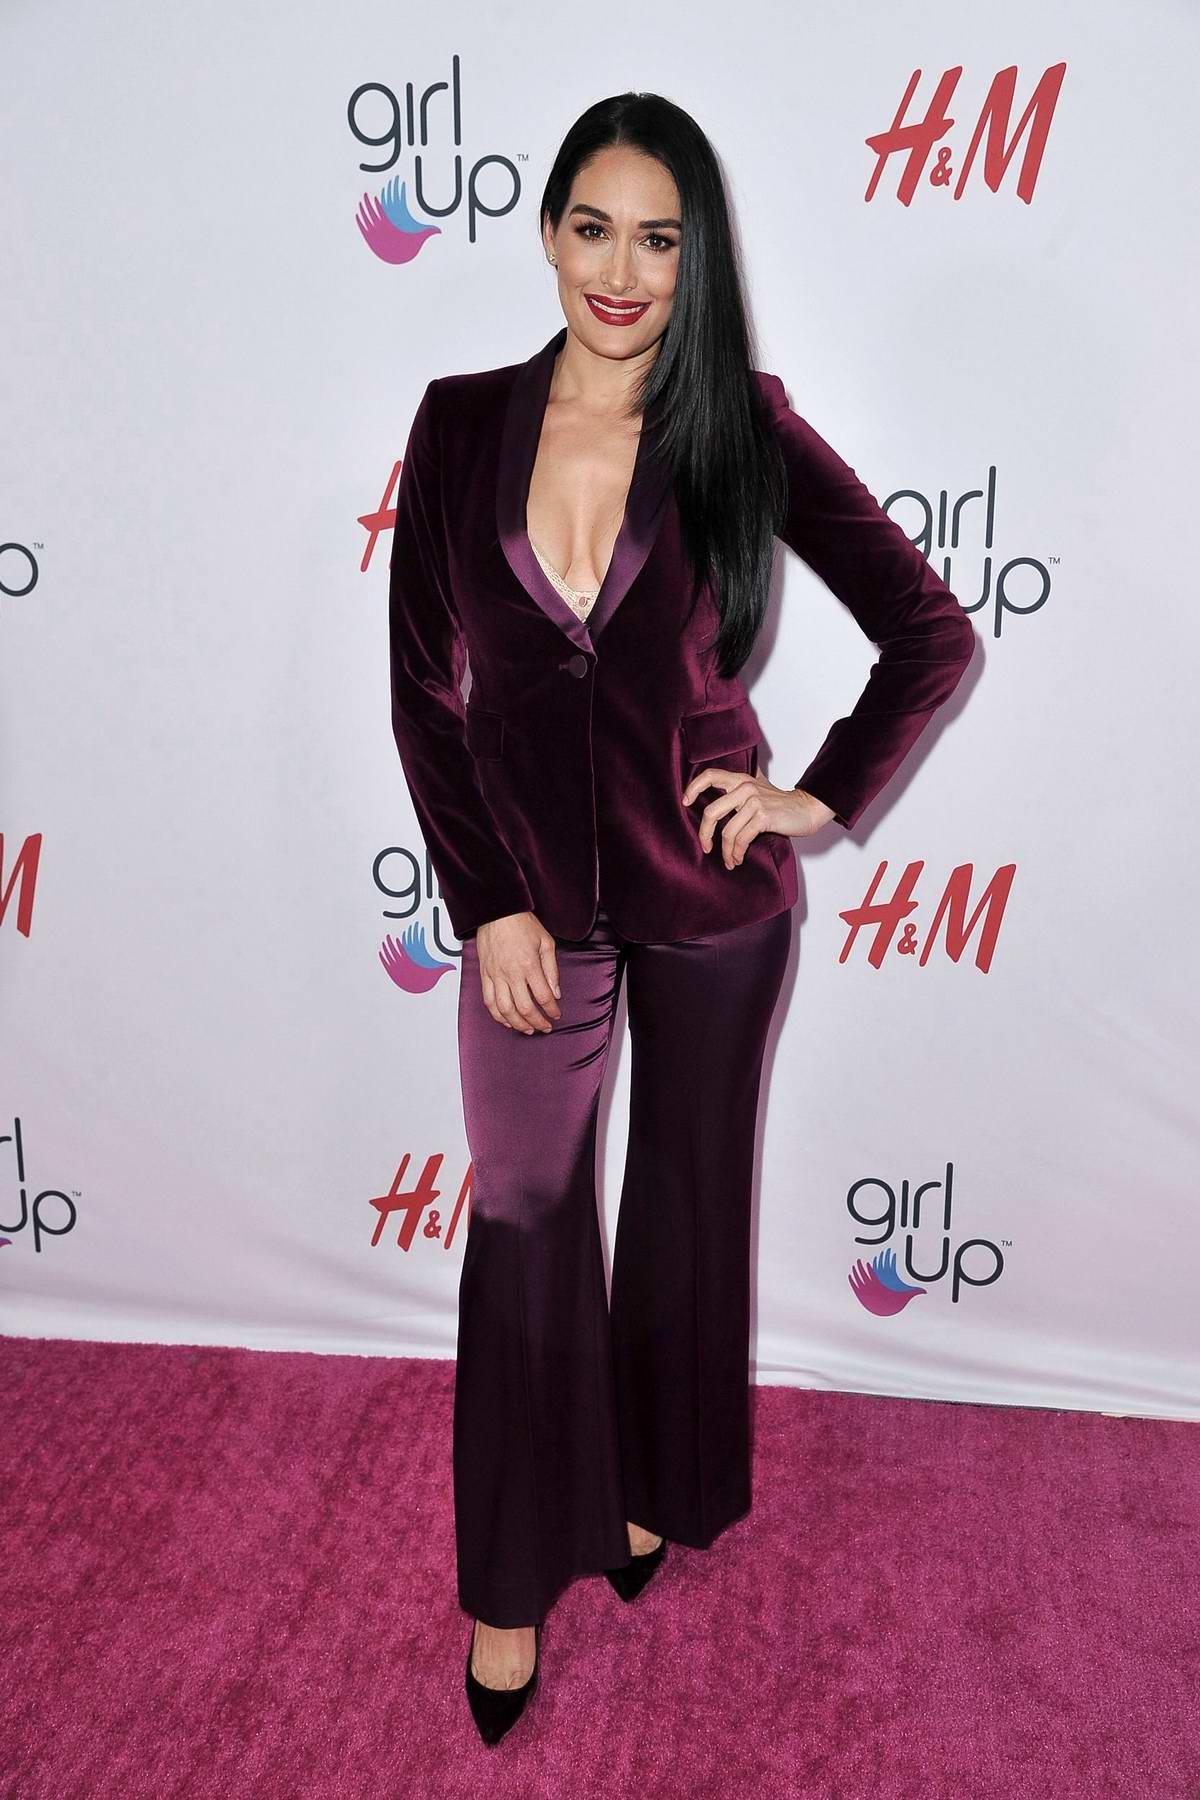 Nikki Bella attends the 2nd Annual Girl Up #GirlHero Awards at the Beverly Wilshire Hotel in Beverly Hills, Los Angeles